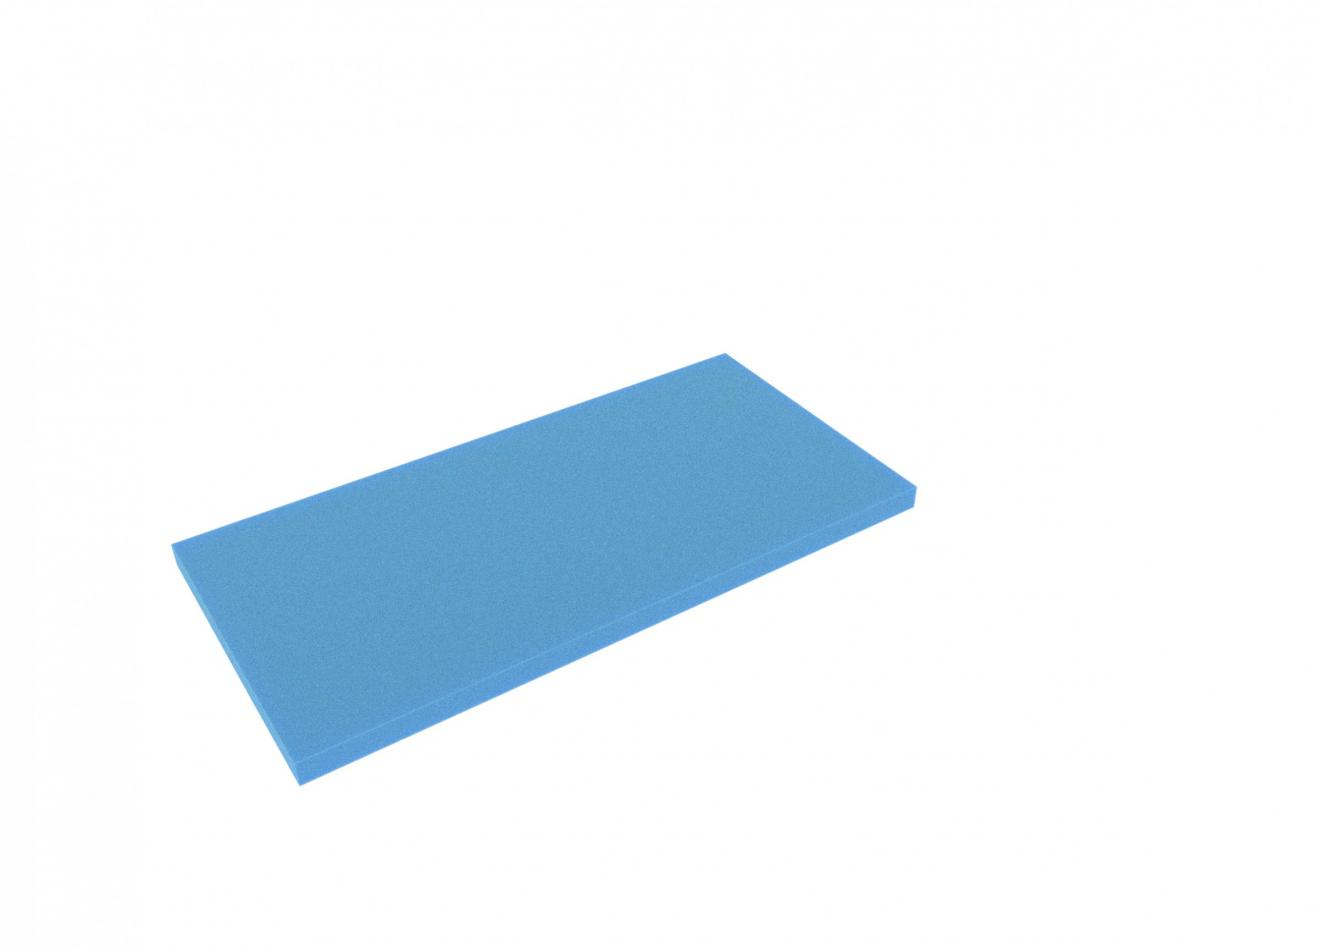 AABA020blue 500 mm x 250 mm x 20 mm colored foam for Shadowboard blue